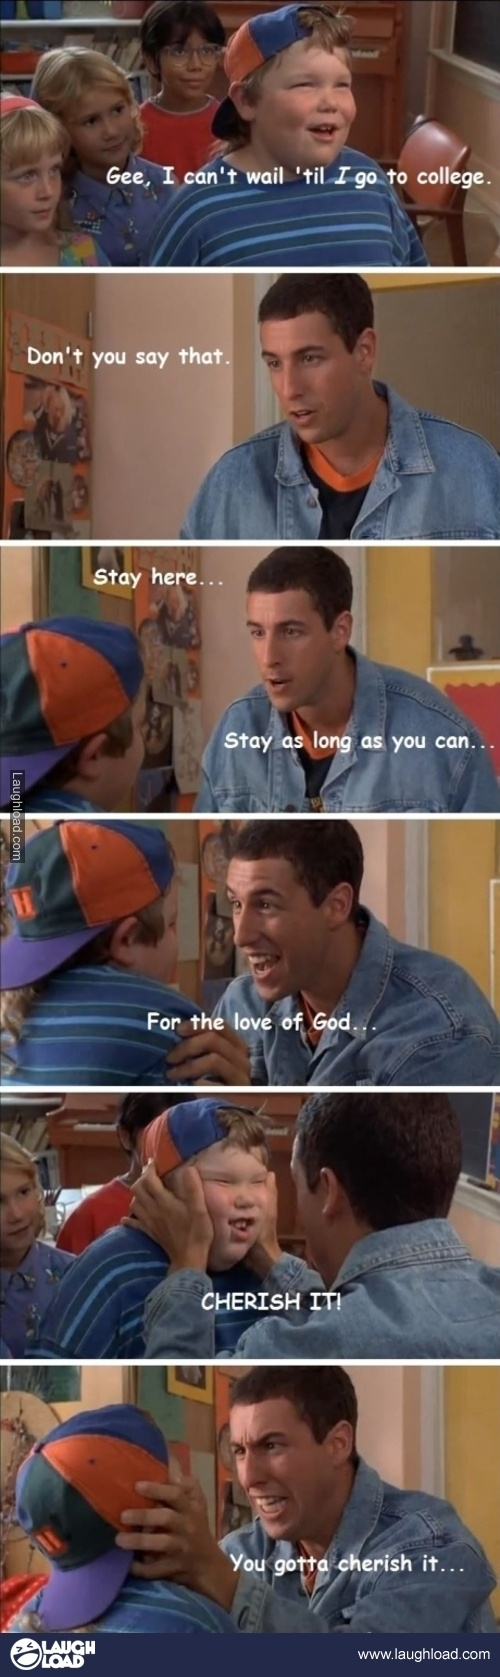 "Best advice ever!! ""Stay here! Stay as long as you can!!!"""